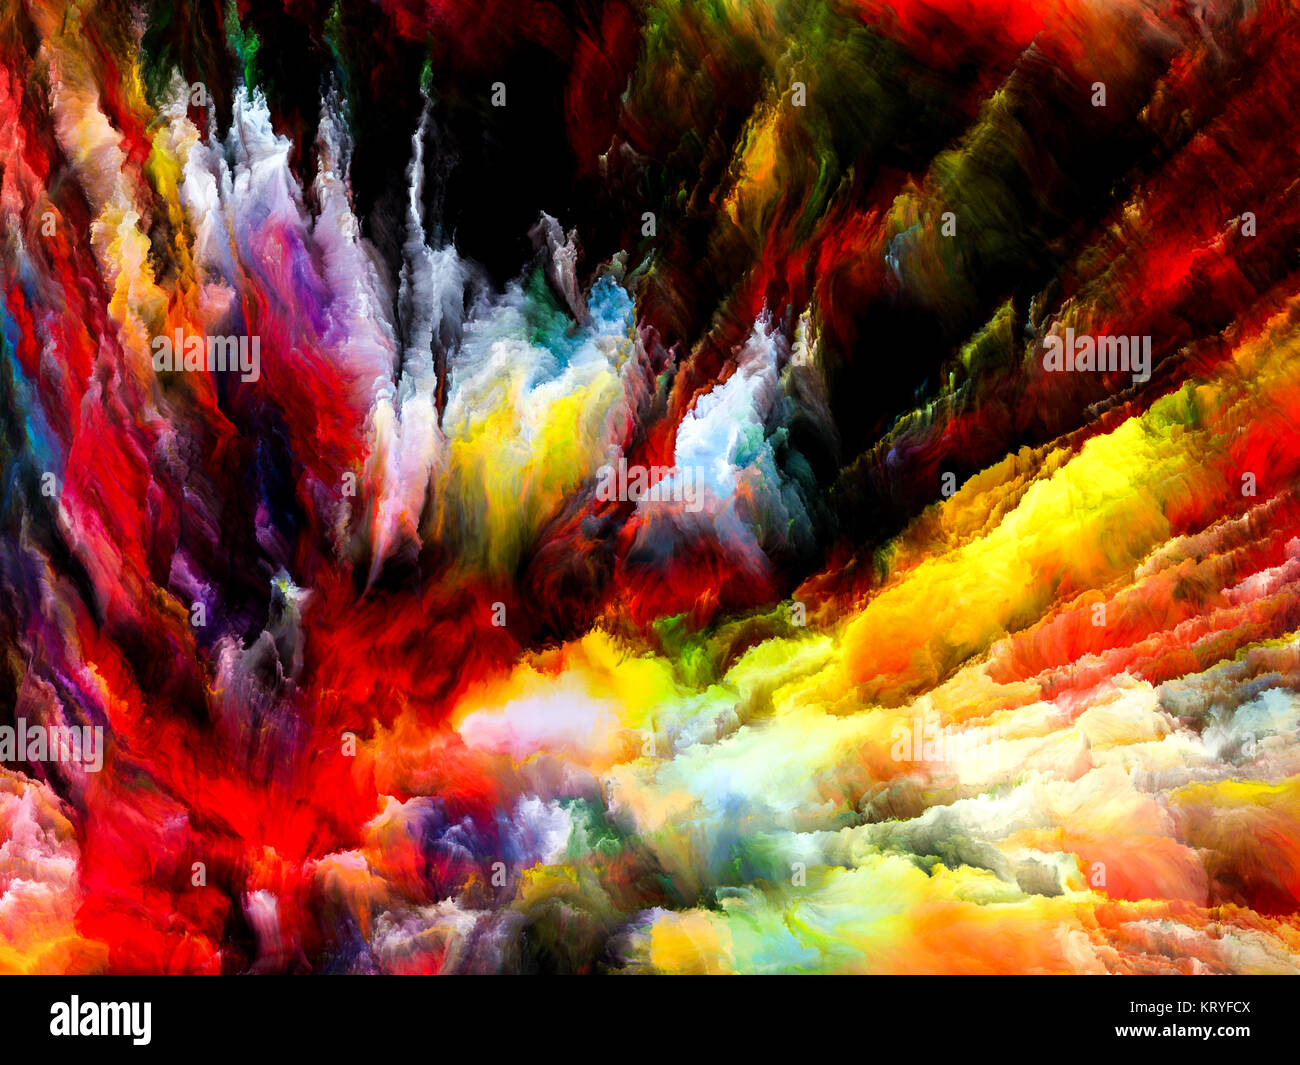 Color Explosion - Stock Image